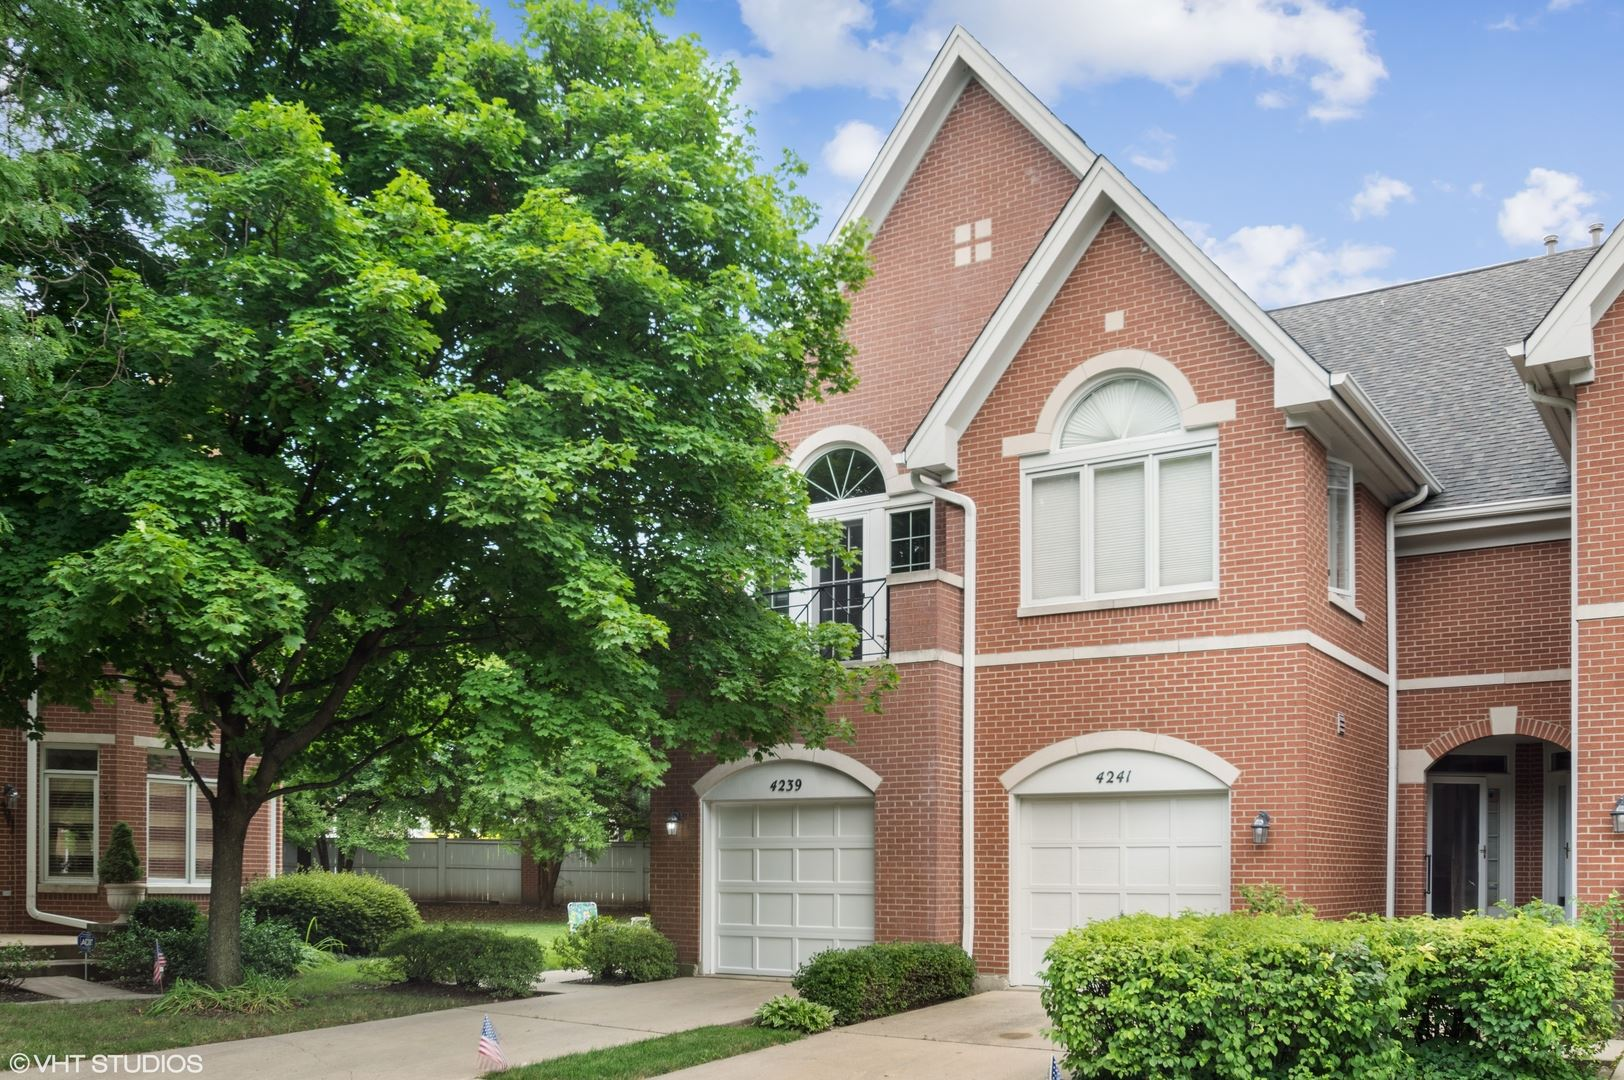 4239 W Highbridge Lane, Chicago, IL 60646 - MLS#: 10797881